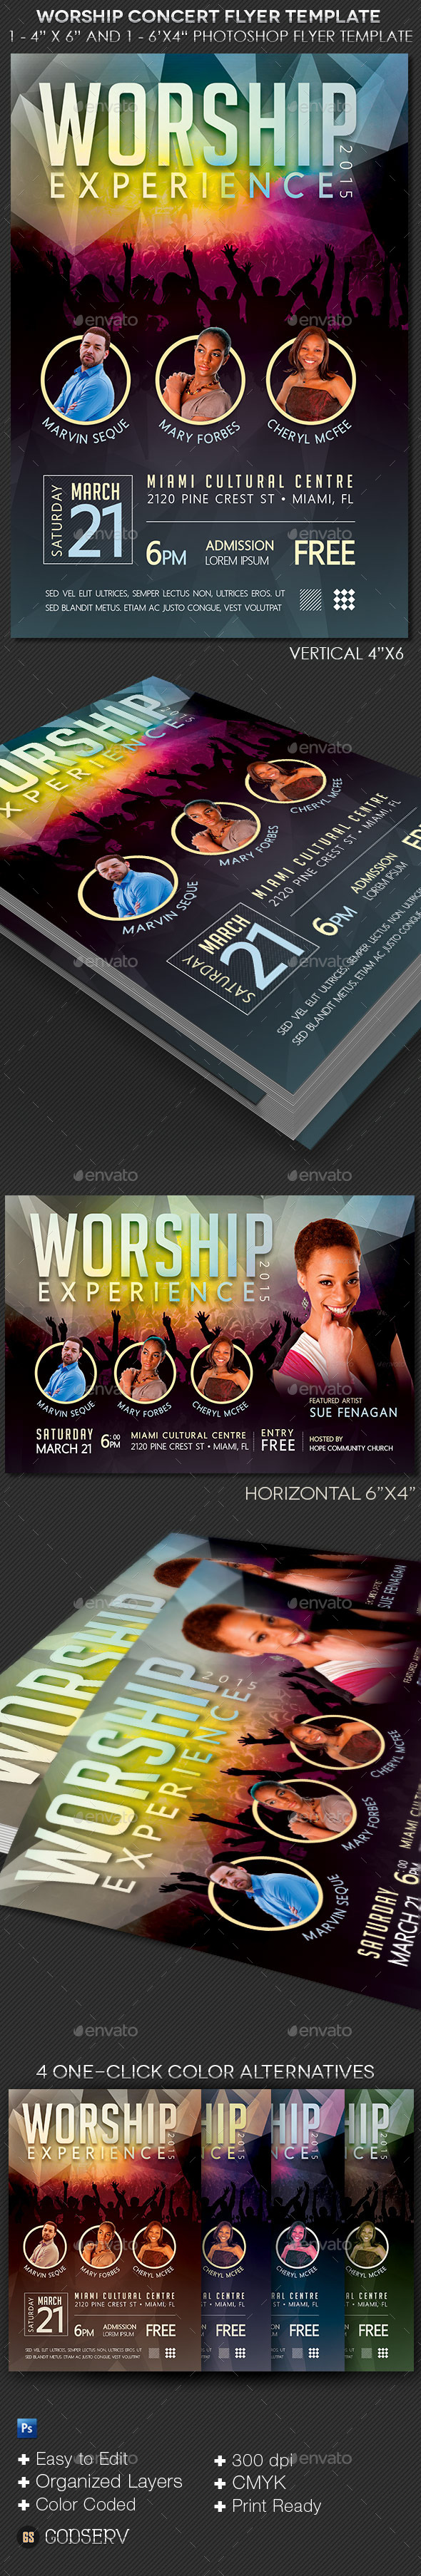 GraphicRiver Worship Concert Flyer Template 10447794